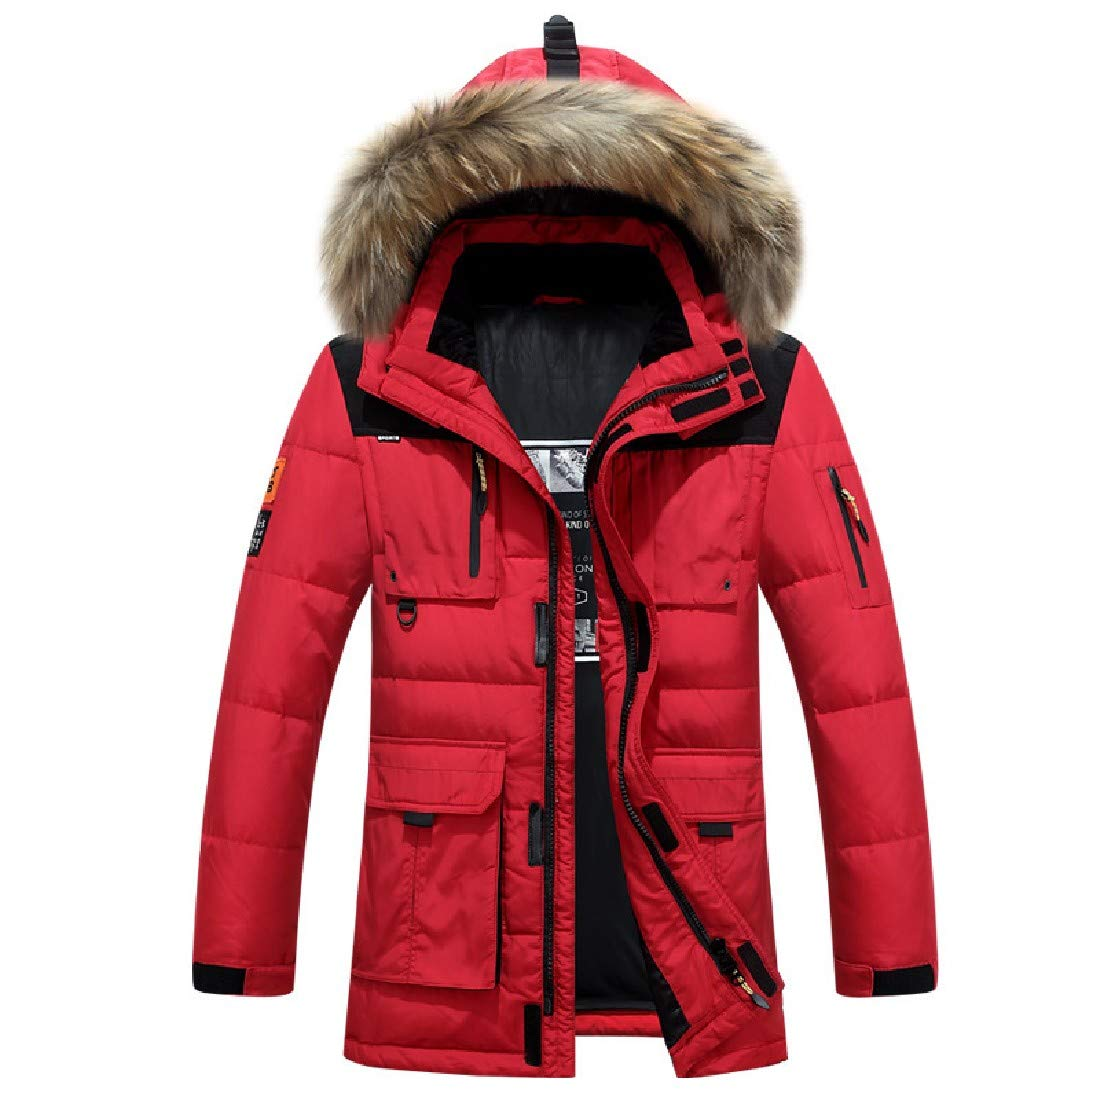 YUNY Mens Hooded Mid-Long Winter Outdoor Warm Down Puffer Jacket Red L